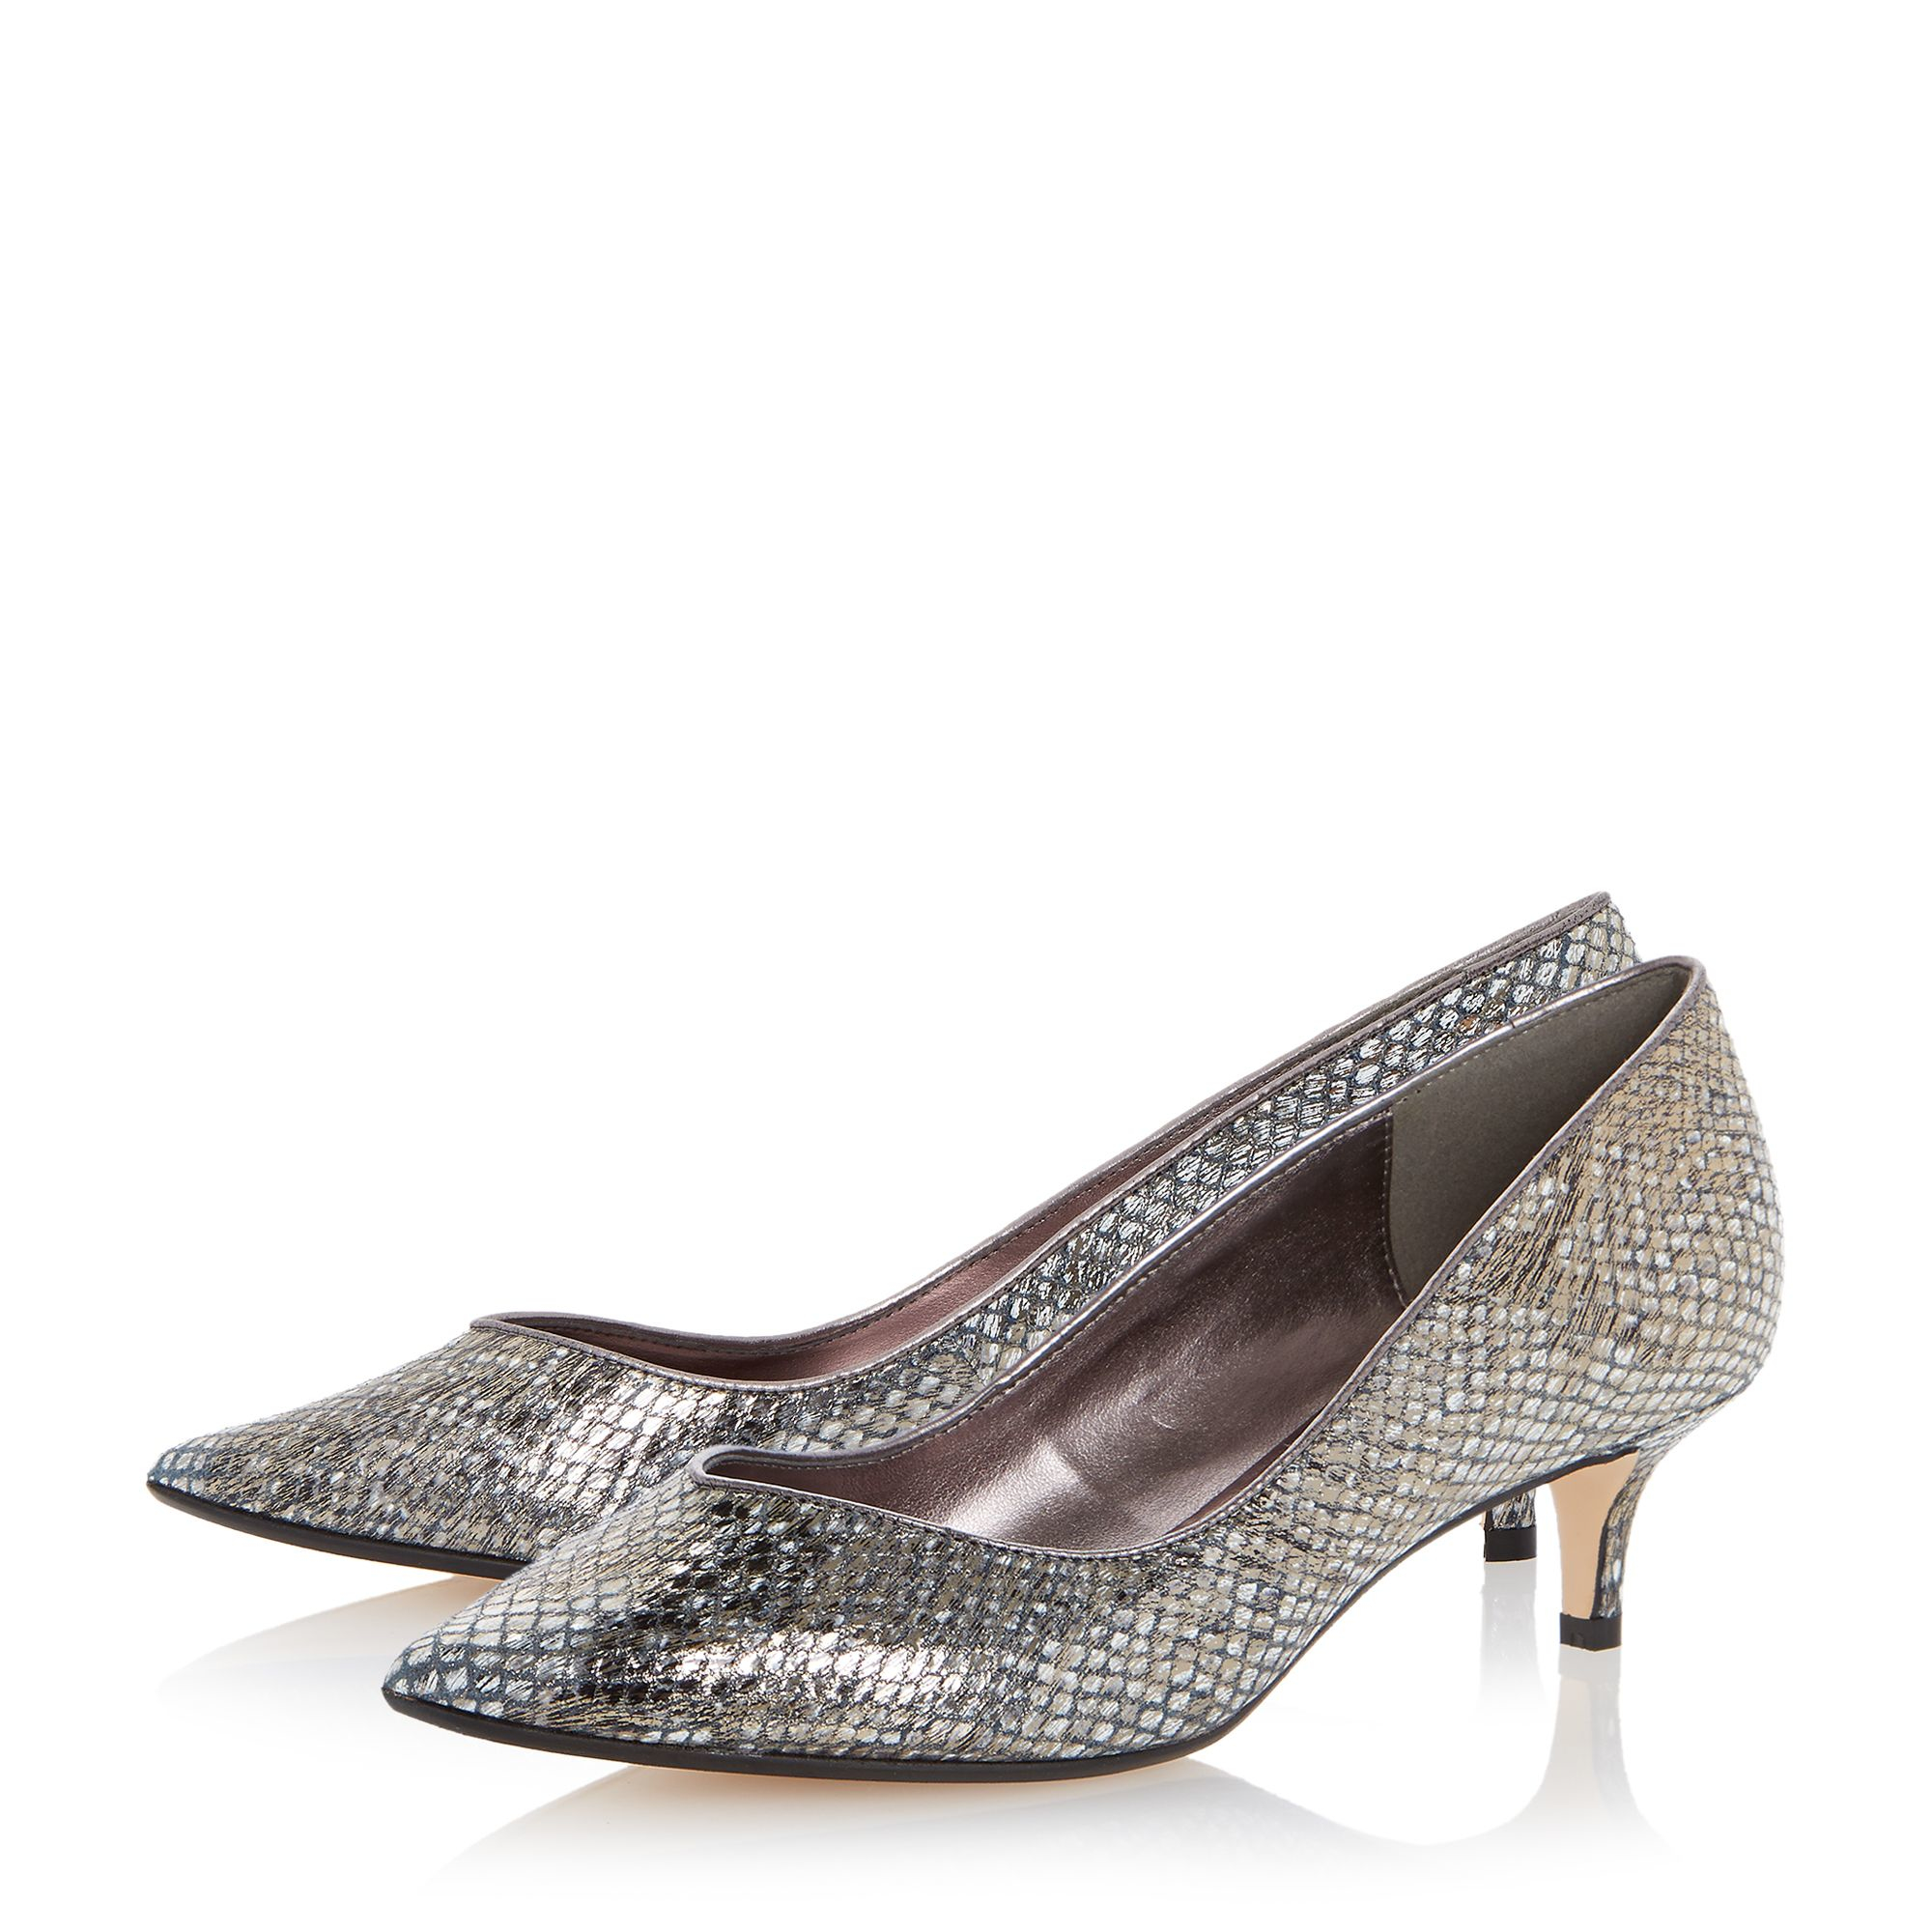 Dune Allice Sweetheart Kitten Heel Court Shoes in Metallic | Lyst